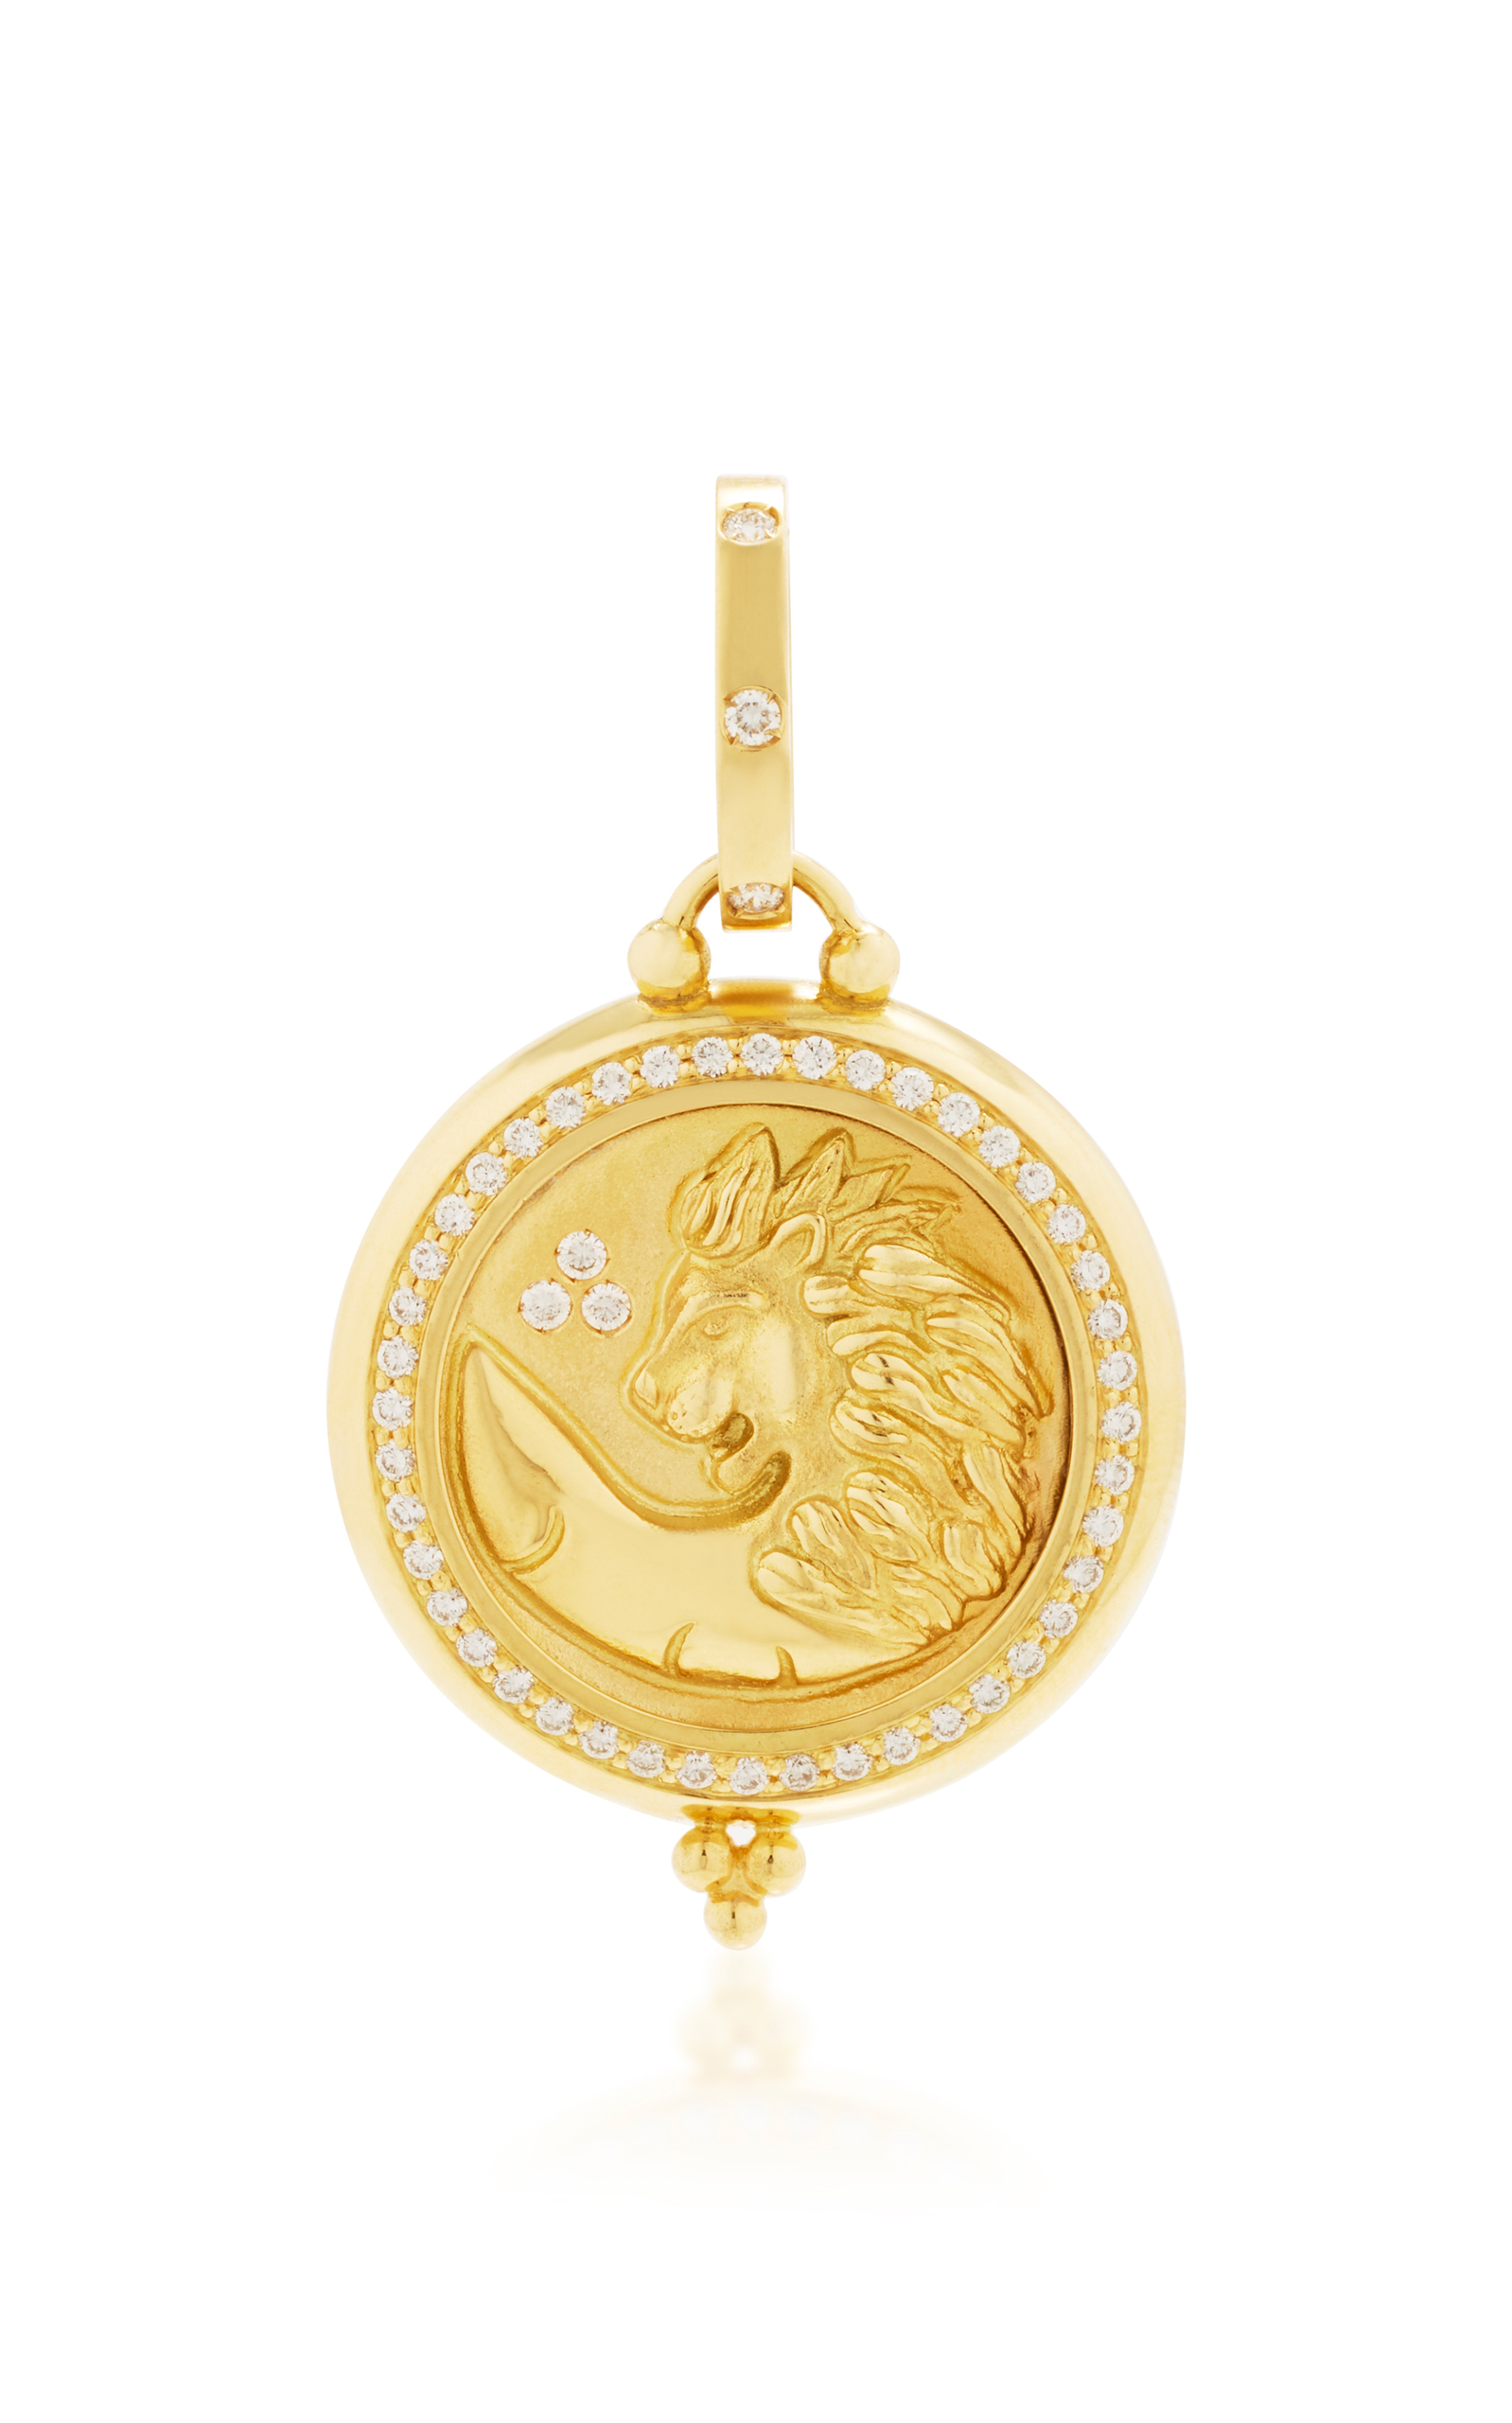 exquisite pendant product ss solid yellow lion gold grams head